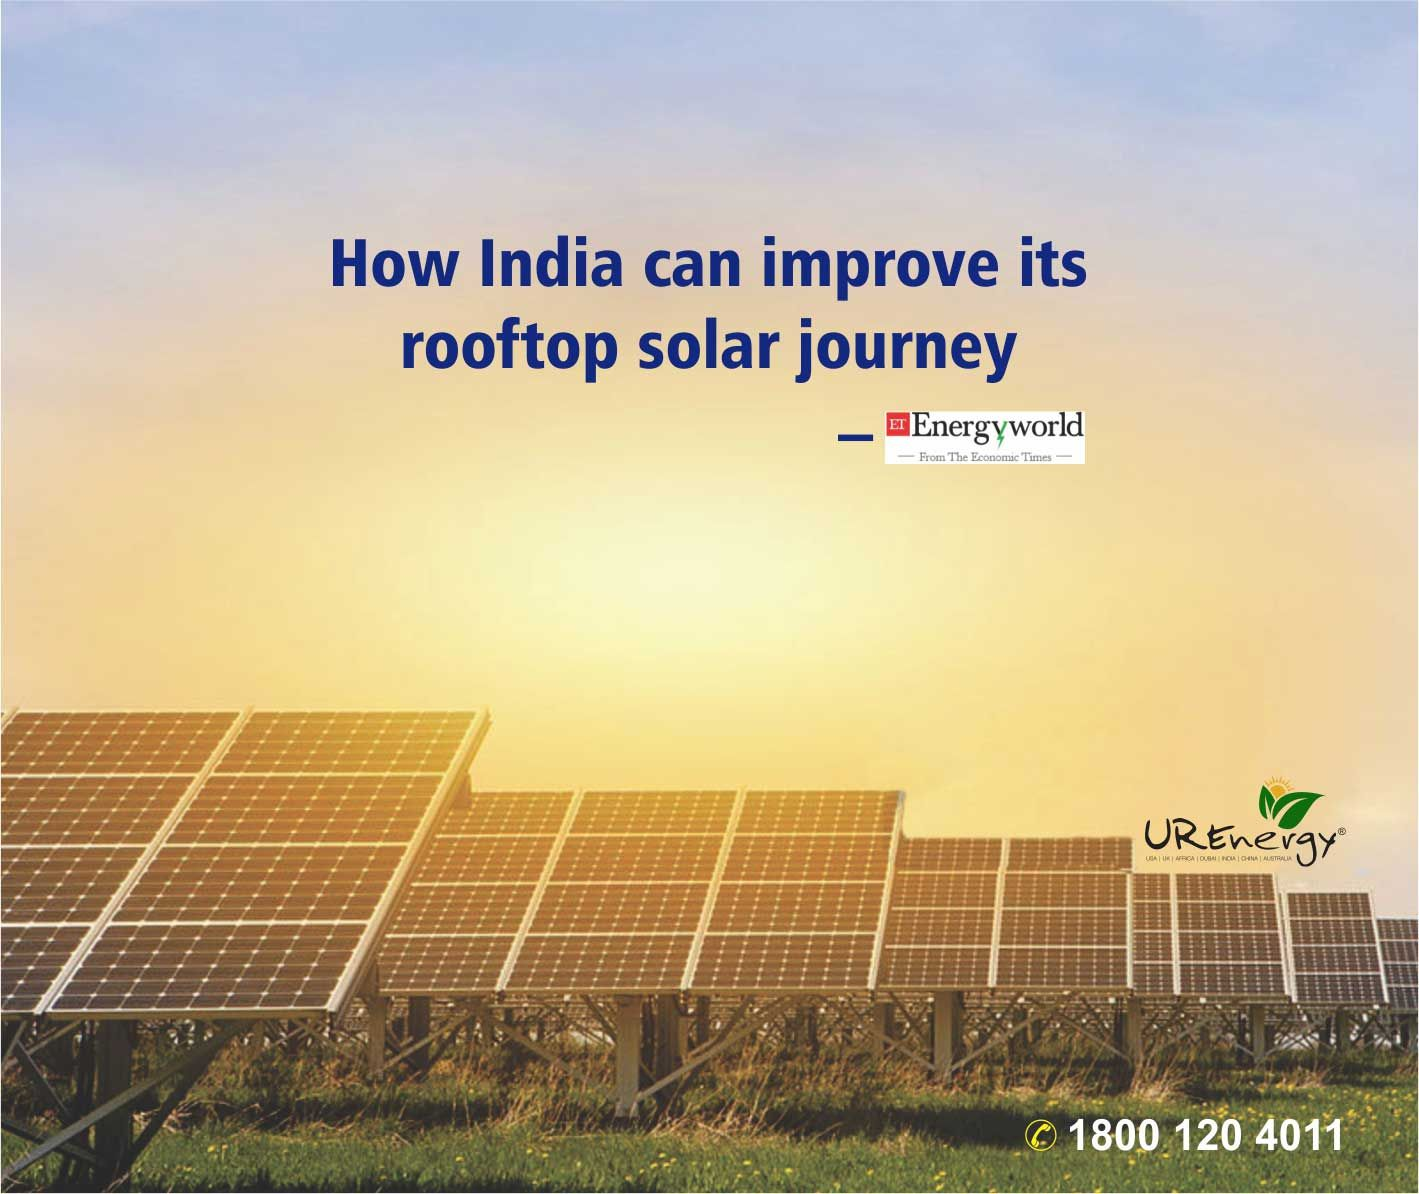 Solar Rooftop Panel Inverter Future India Energy For More Information Www Urenergyglobal Com Call Us Toll Free 1800 120 4011 Solar Energy Rooftop